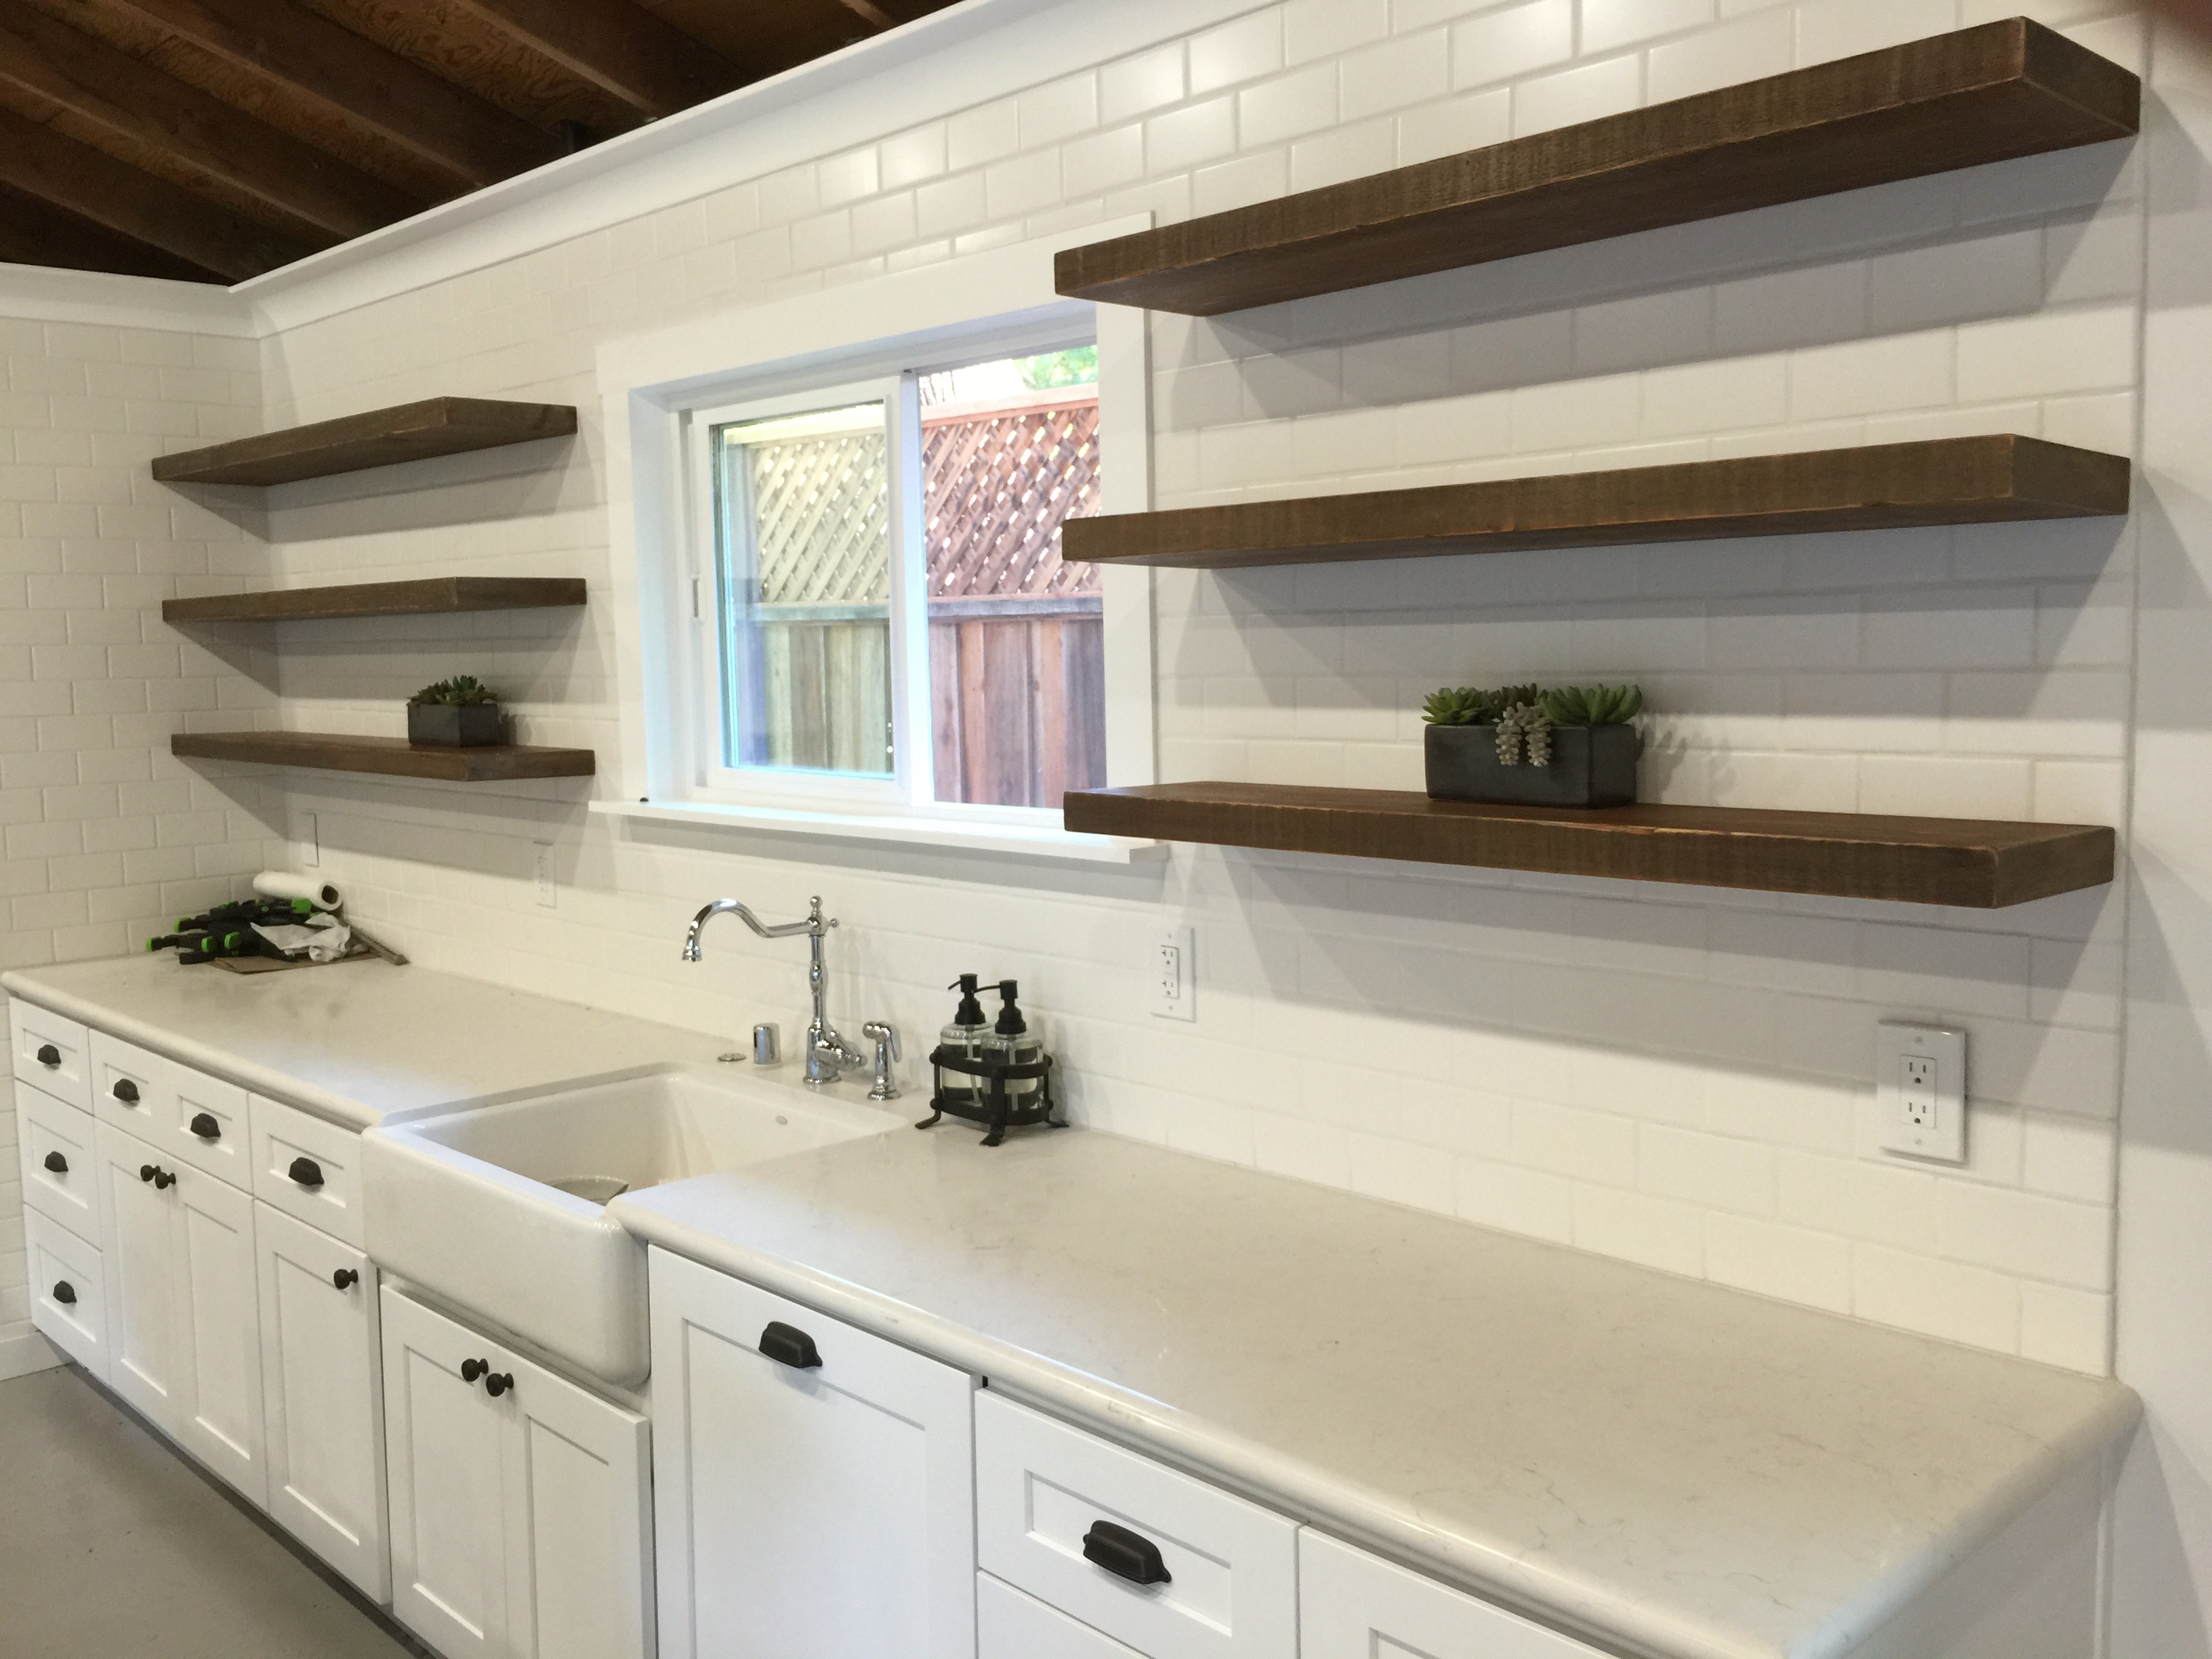 floating shelf wood white storage cabinet reclaimed shelves design for kitchen interior shelving ideas small brown bath shower mixer set computer desk baby room foot ikea expedit